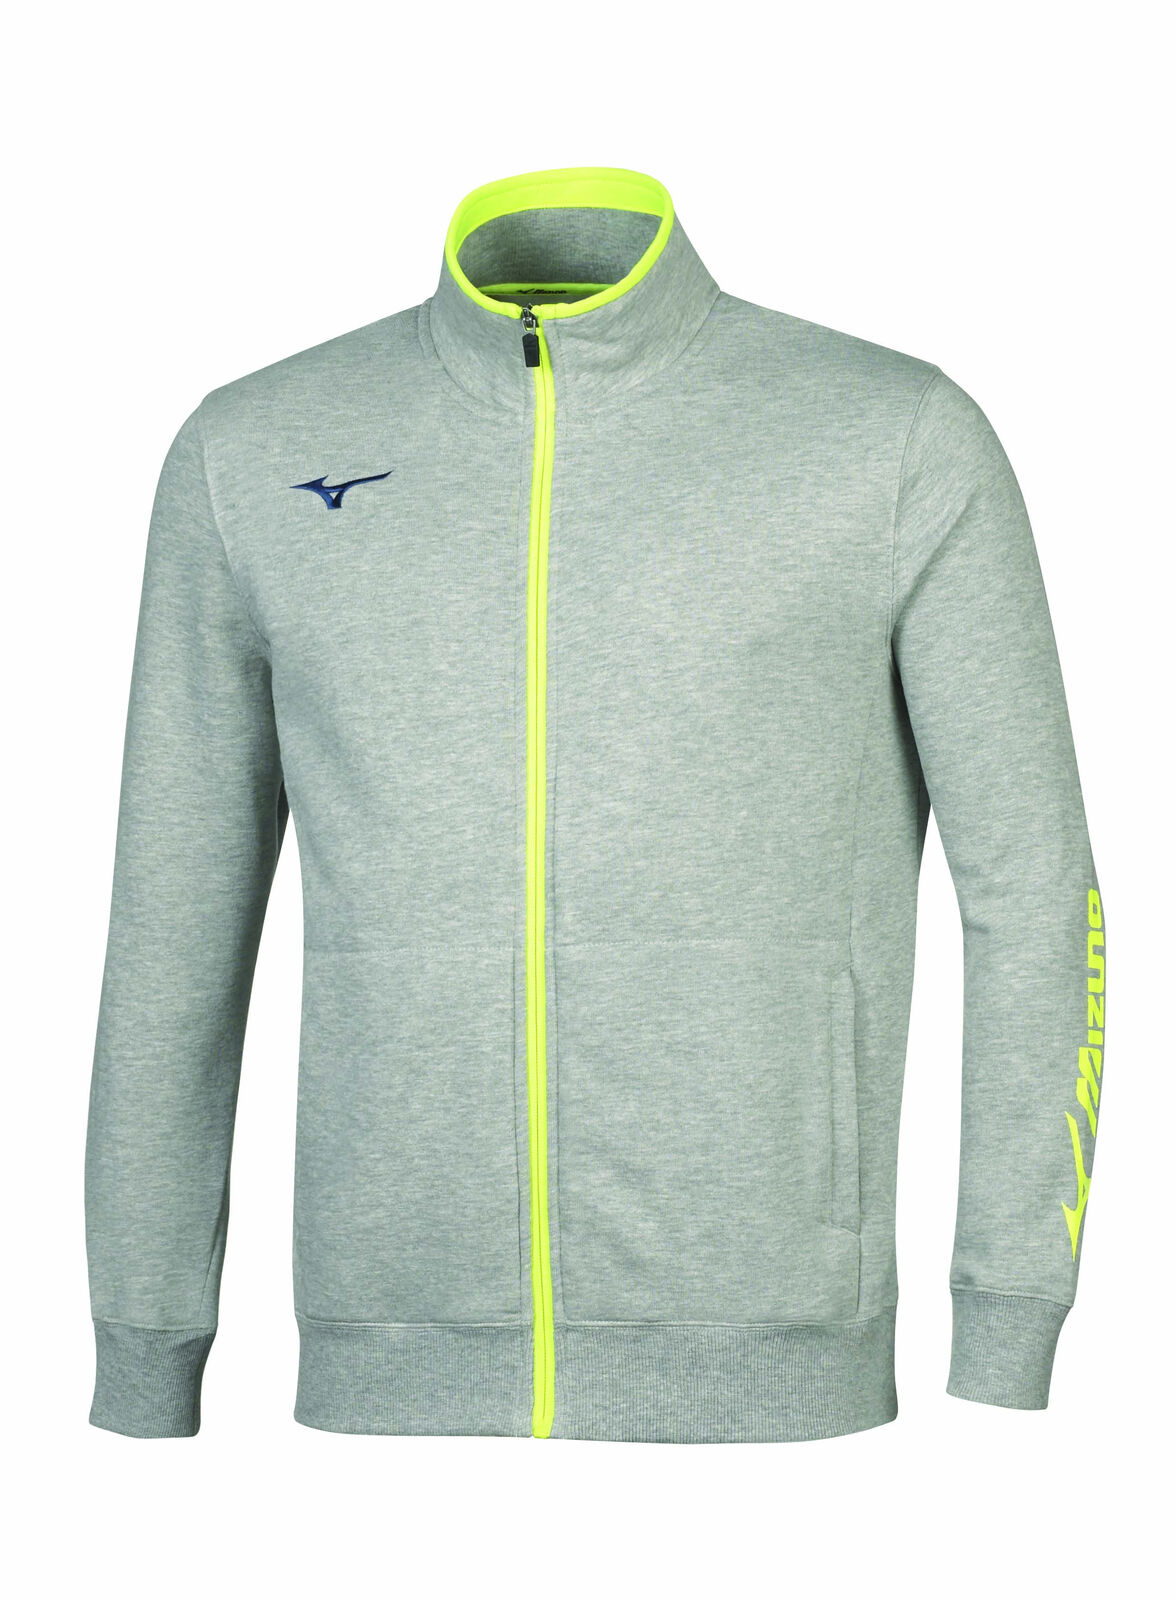 Mizuno Felpa SWEAT Full Zip JACKET Uomo 32EC7009-05